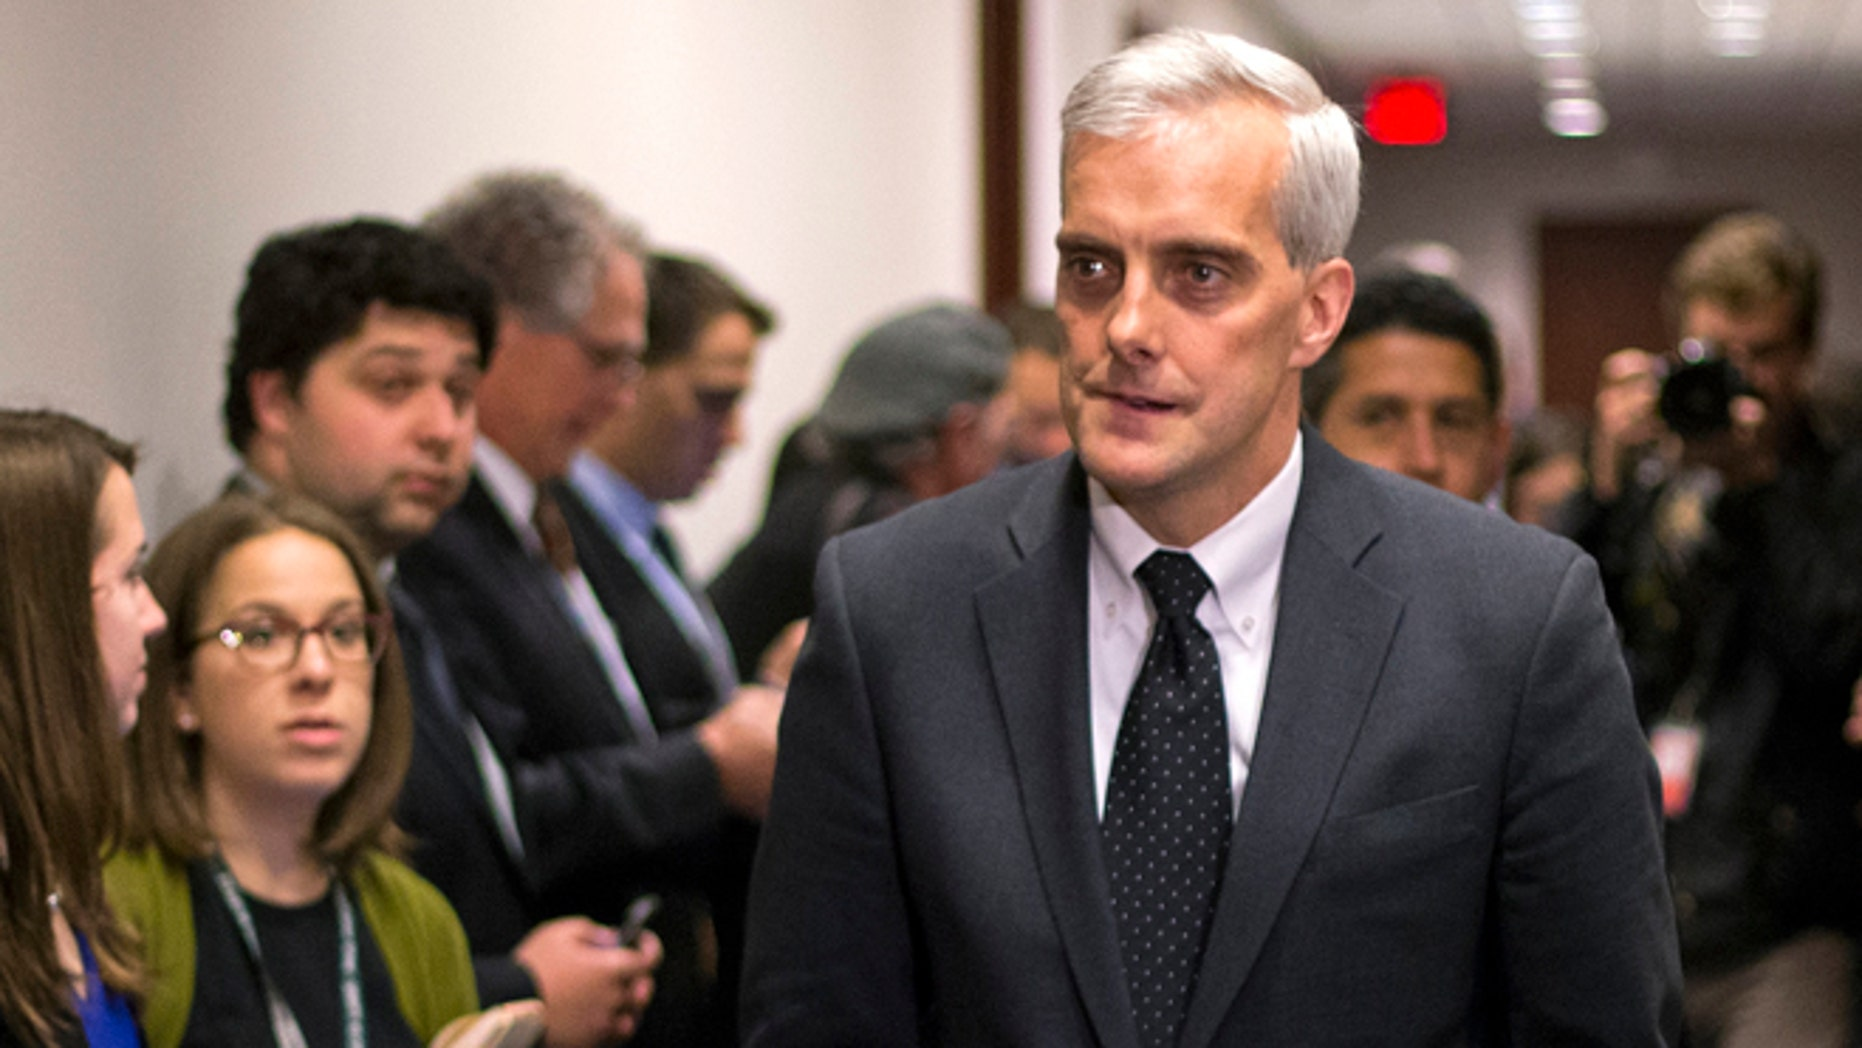 In this Dec. 11, 2014 file photo, White House Chief of Staff Denis McDonough arrives to attend a U.S. House Democratic Caucus meeting at the US Capitol in Washington.